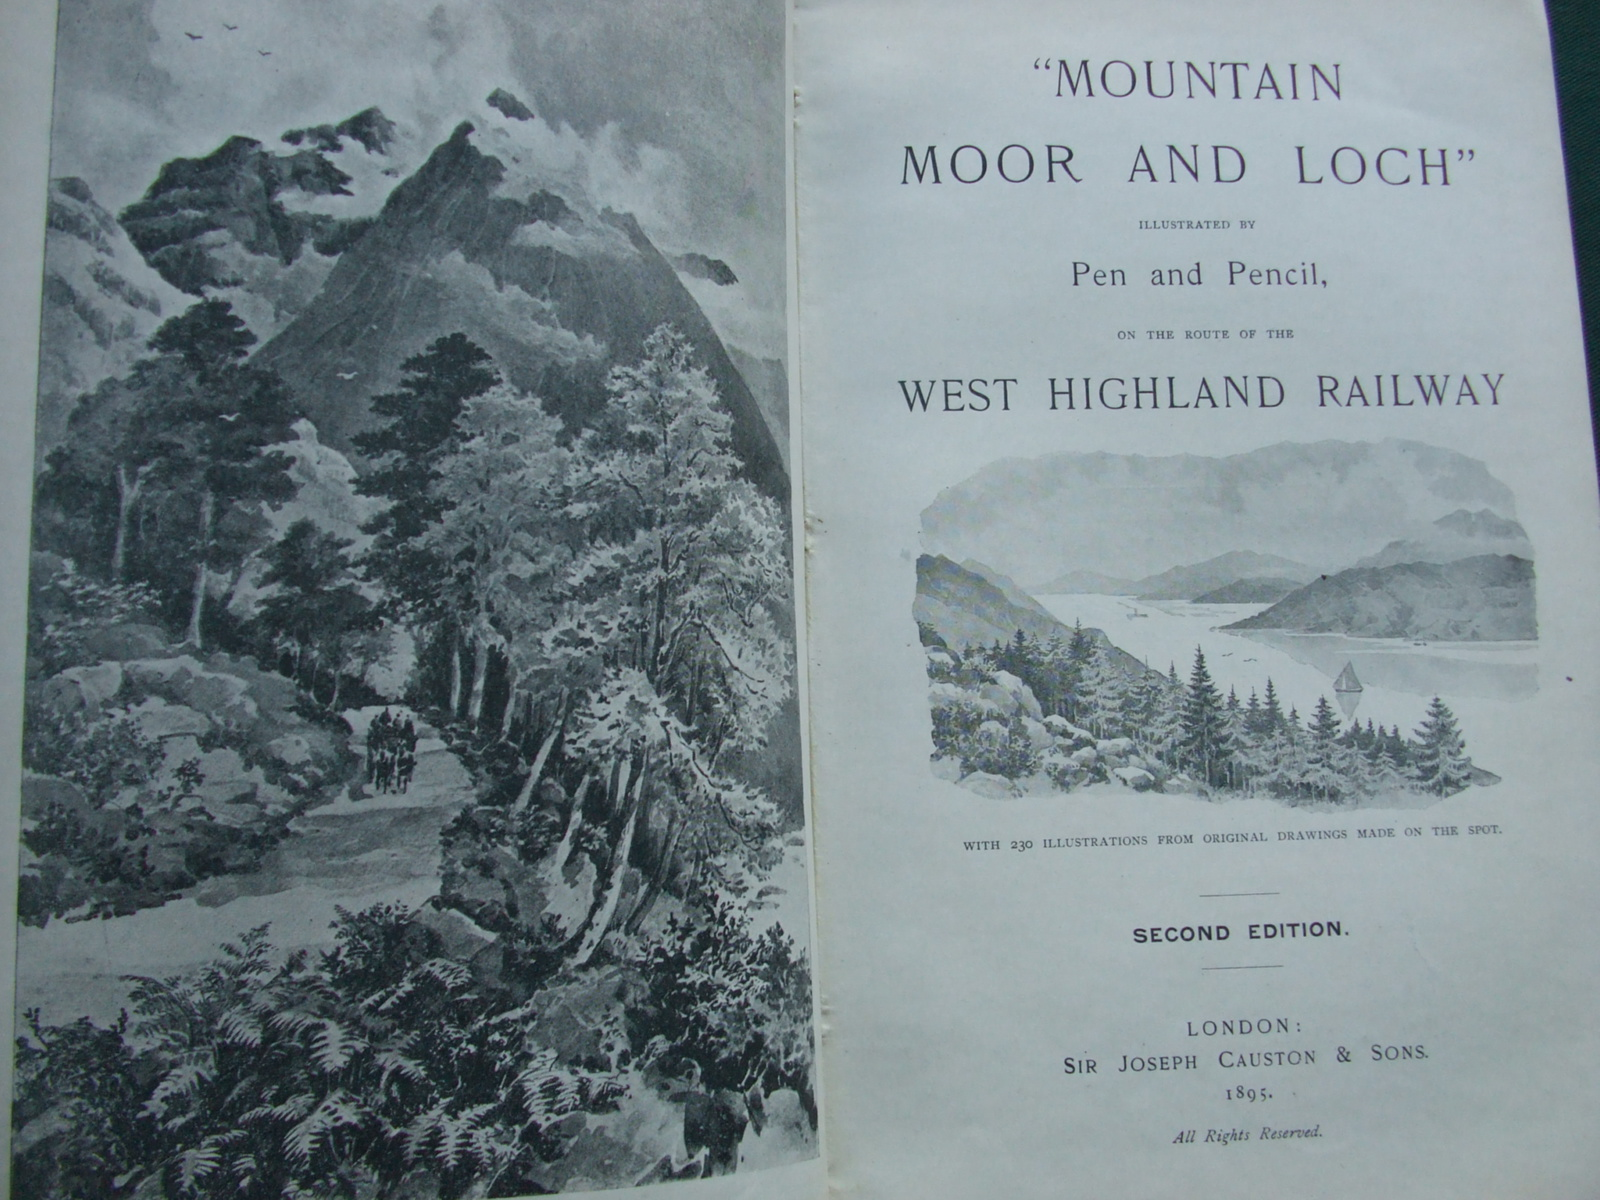 Image for Mountain, Moor and Loch' illustrated by Pen and Pencil on the route of the West Highland Railway